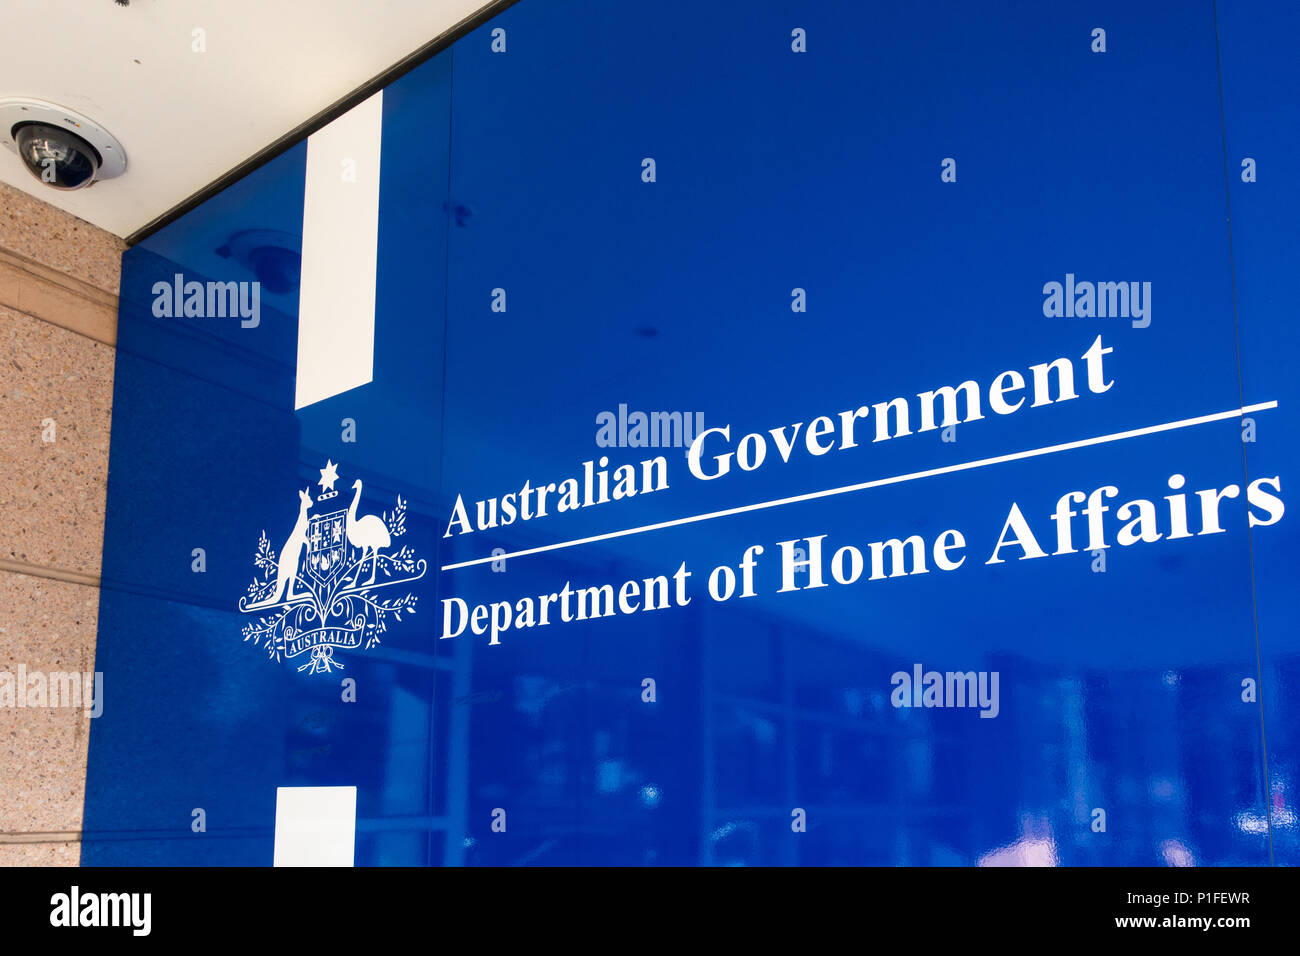 Logo of Department of Home Affairs at entrance of the office building. Melbourne, VIC Australia. - Stock Image